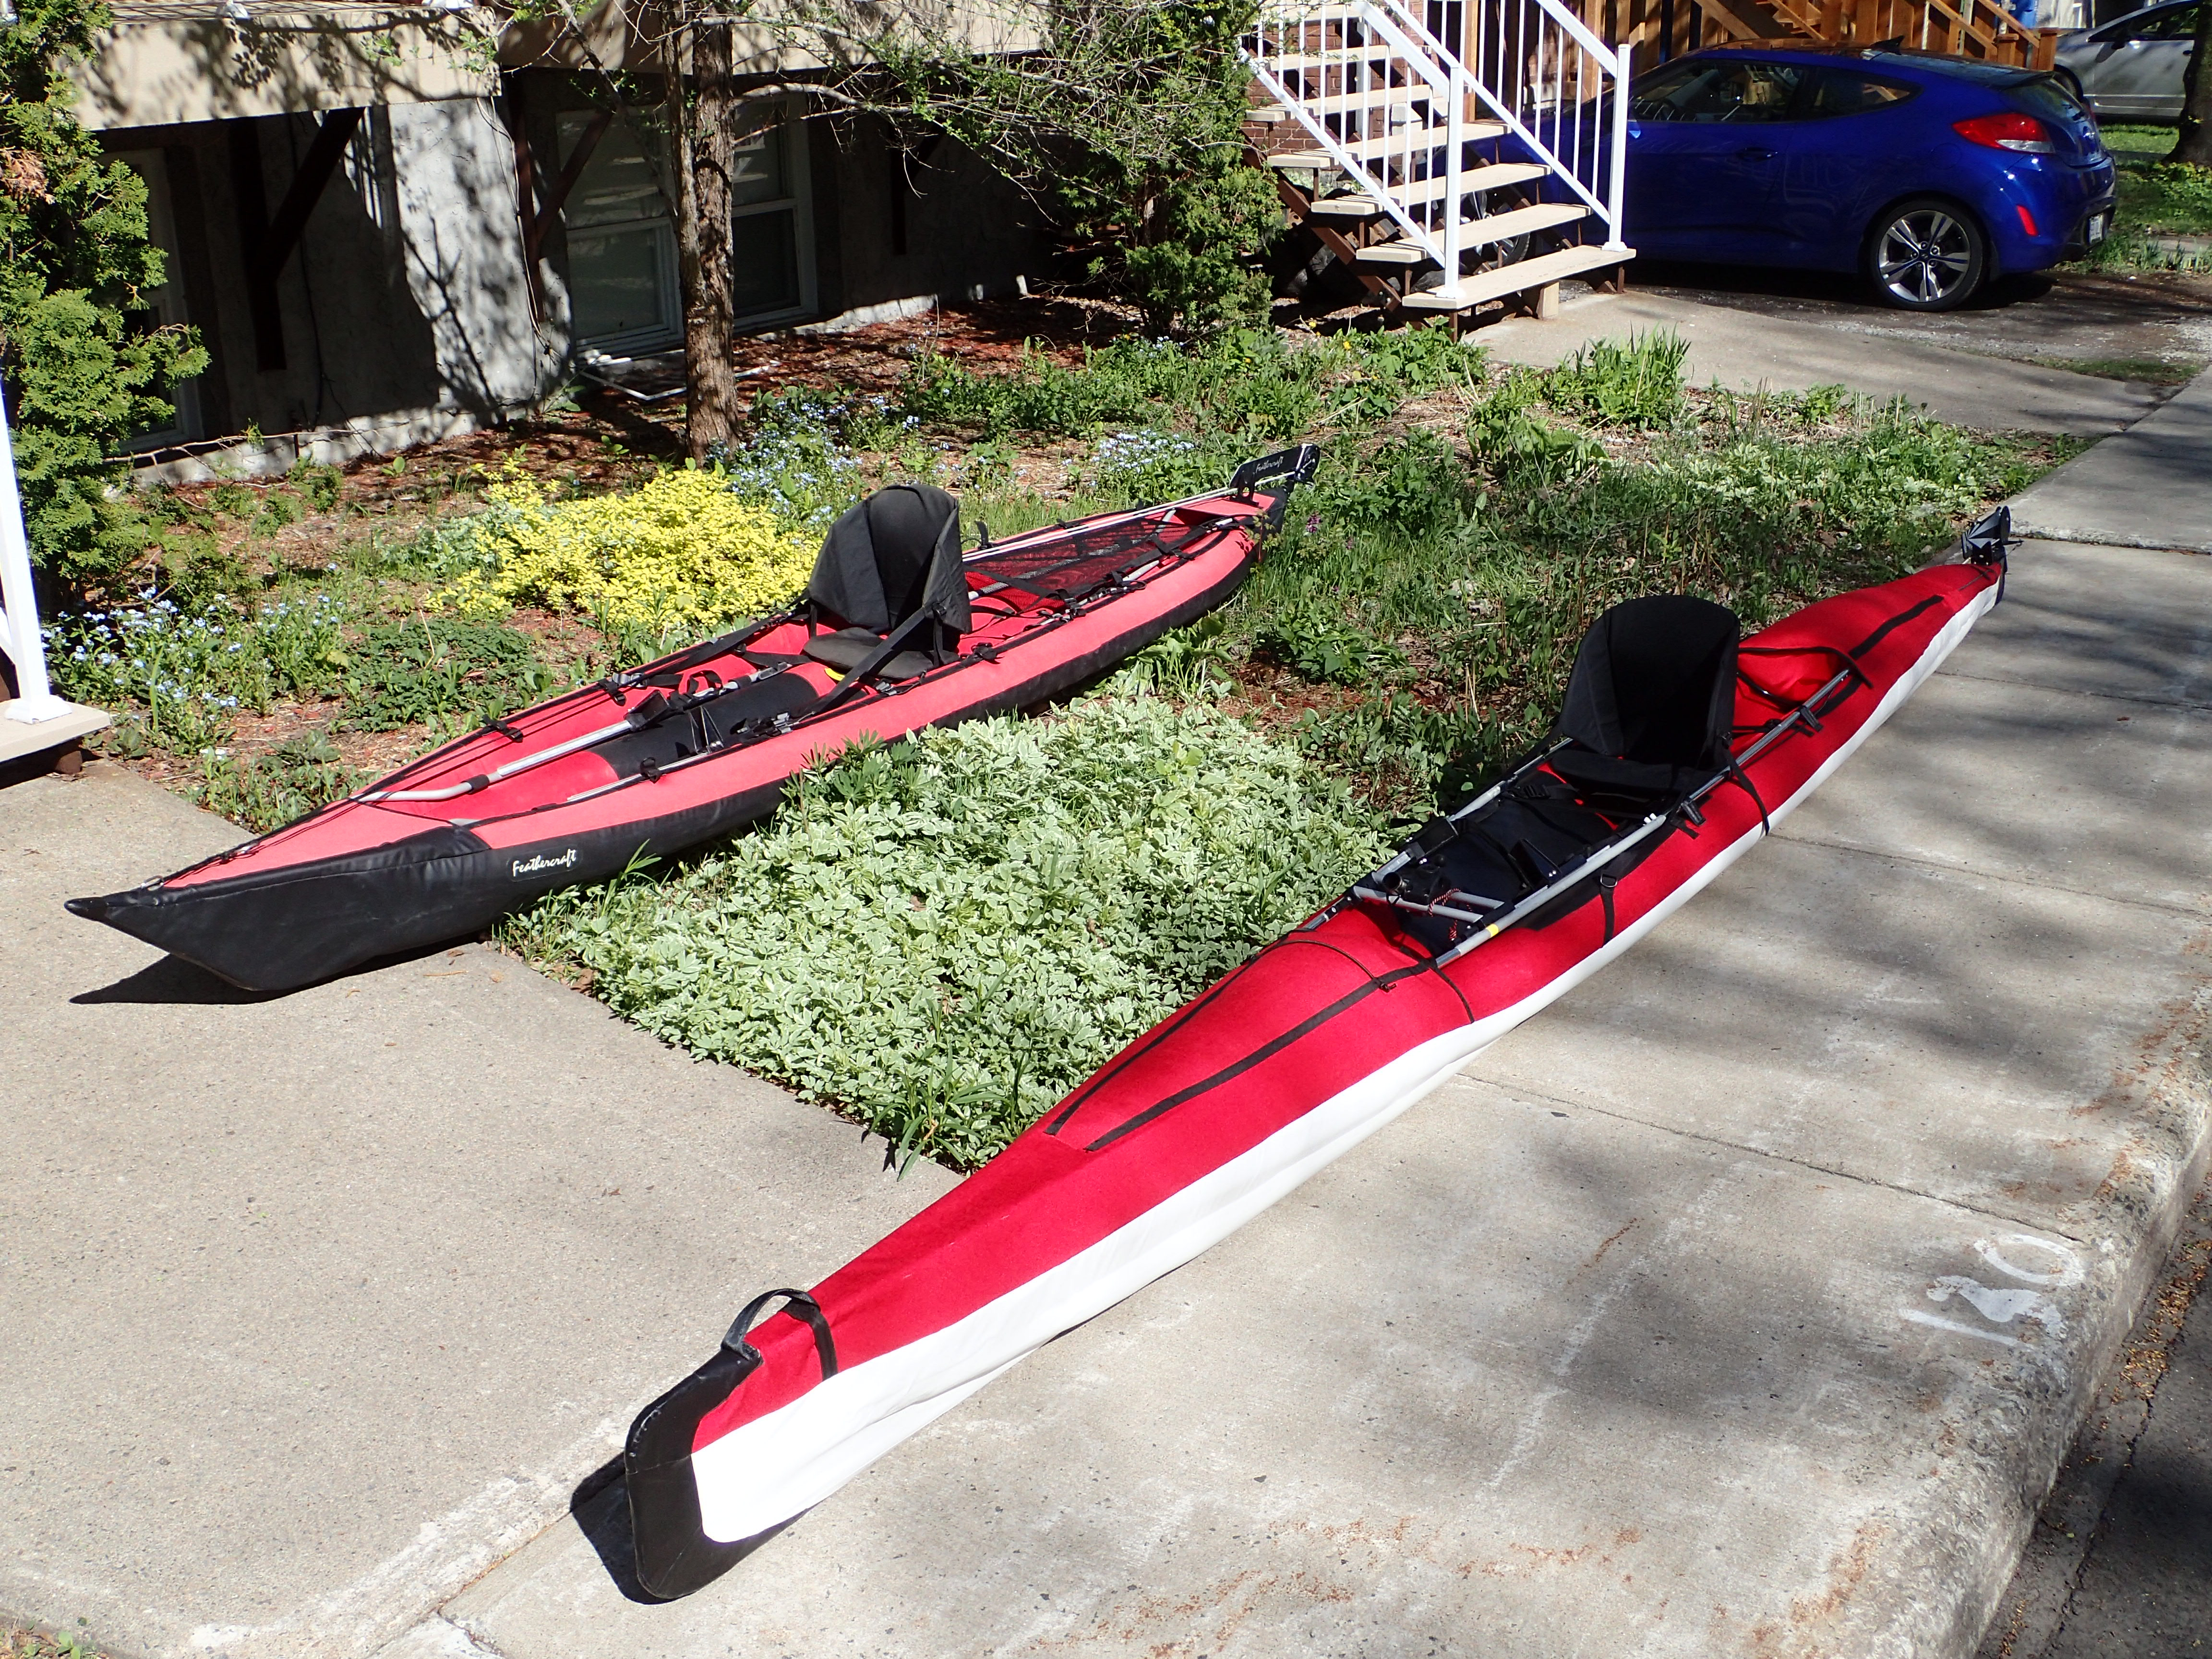 Folding Kayaks Forum • View topic - Completed inflatable surfski